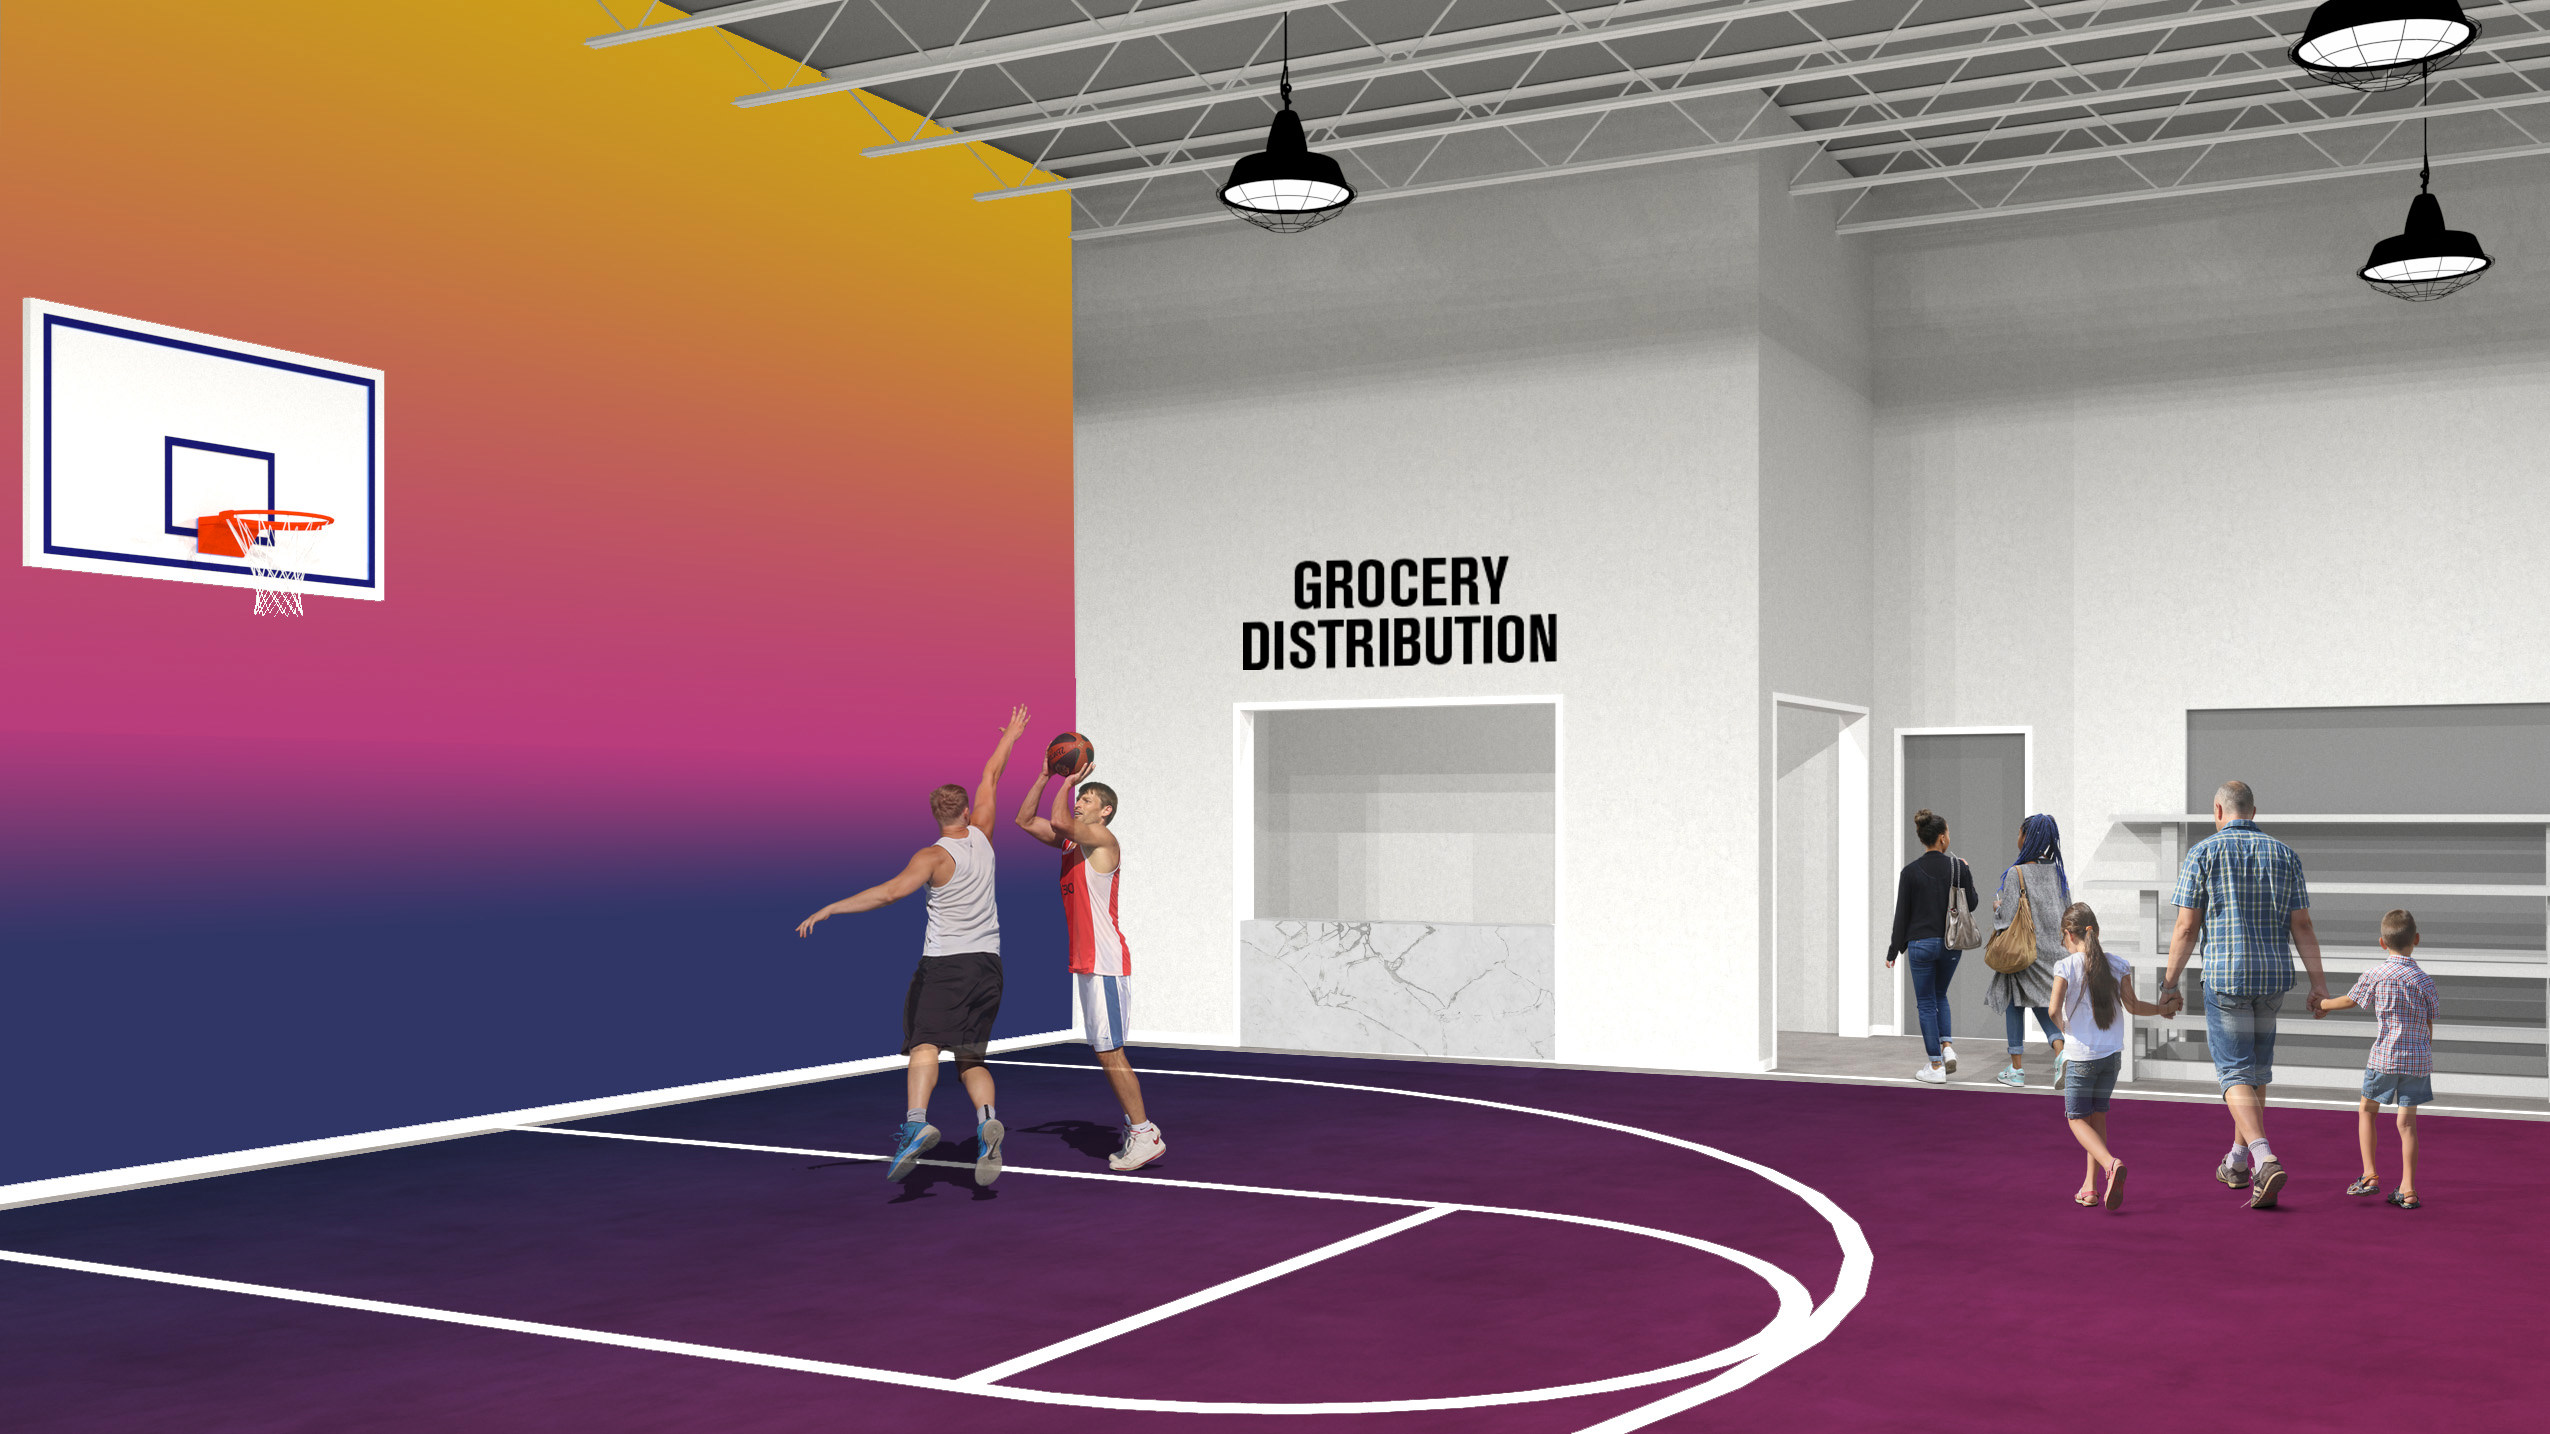 rendering of a basketball court with people